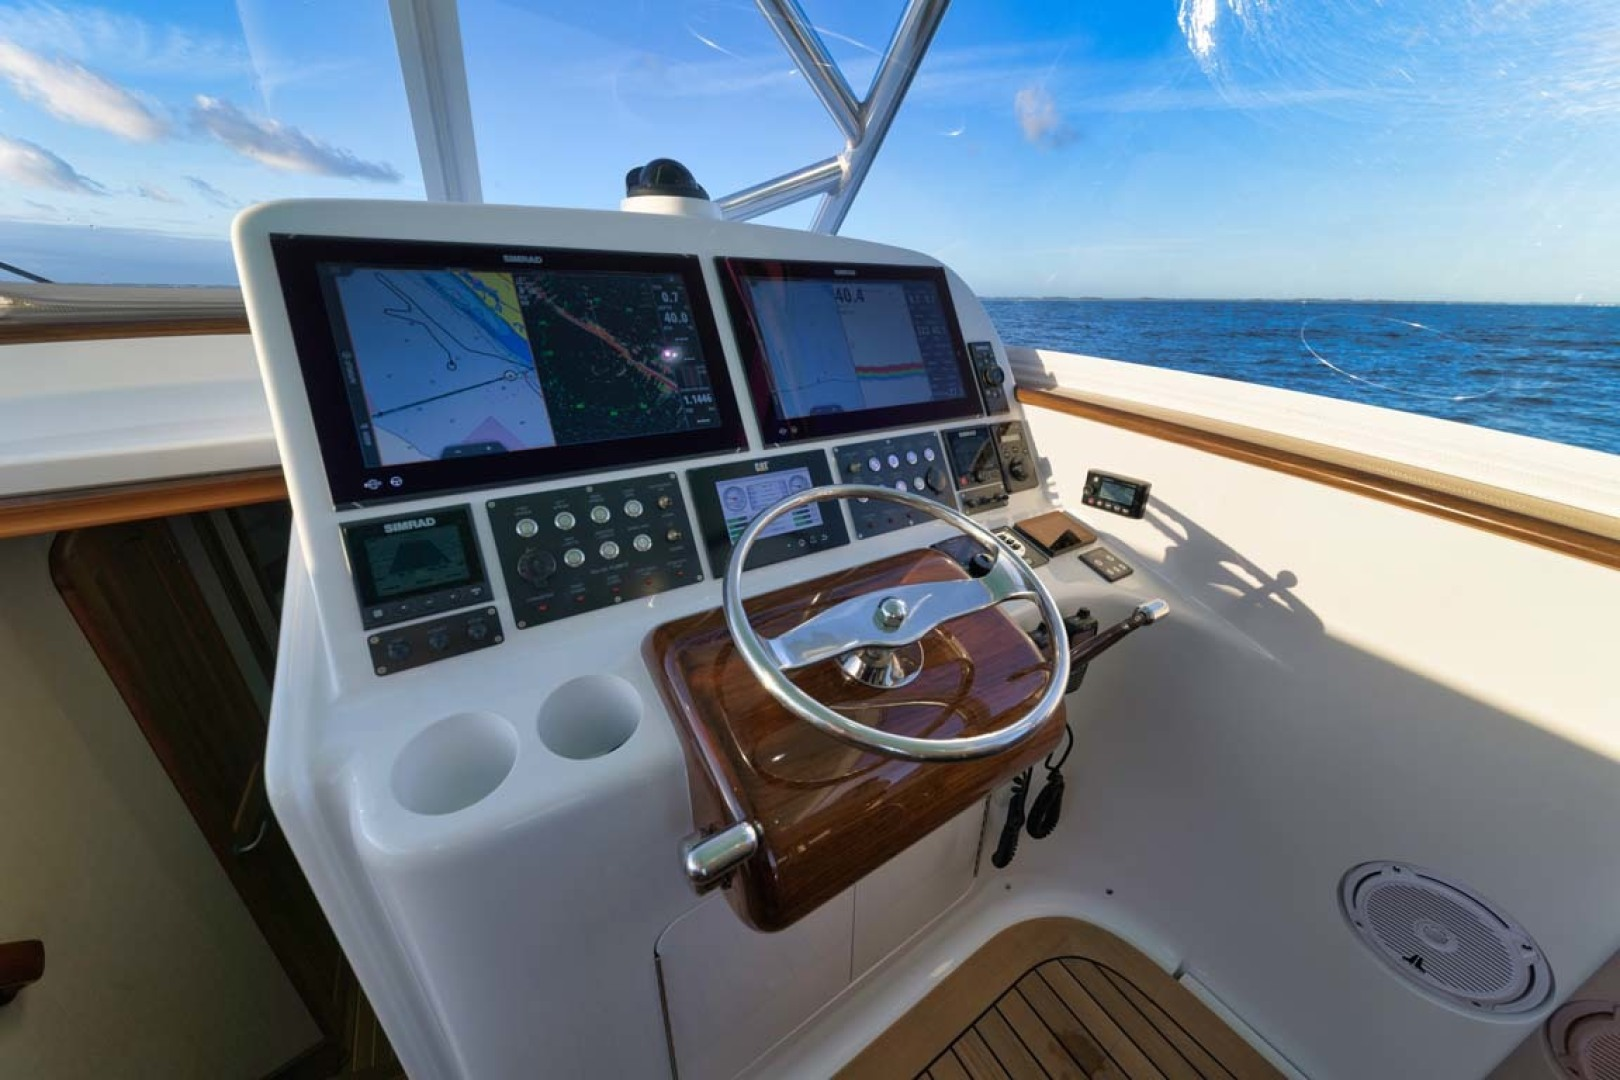 Winter Custom Yachts-46 Walkaround 2019-Family Circus Stuart-Florida-United States-Teak Helm Pod with Palm Beach Style Single Lever Controls and Bow Thruster Integration-1563754 | Thumbnail